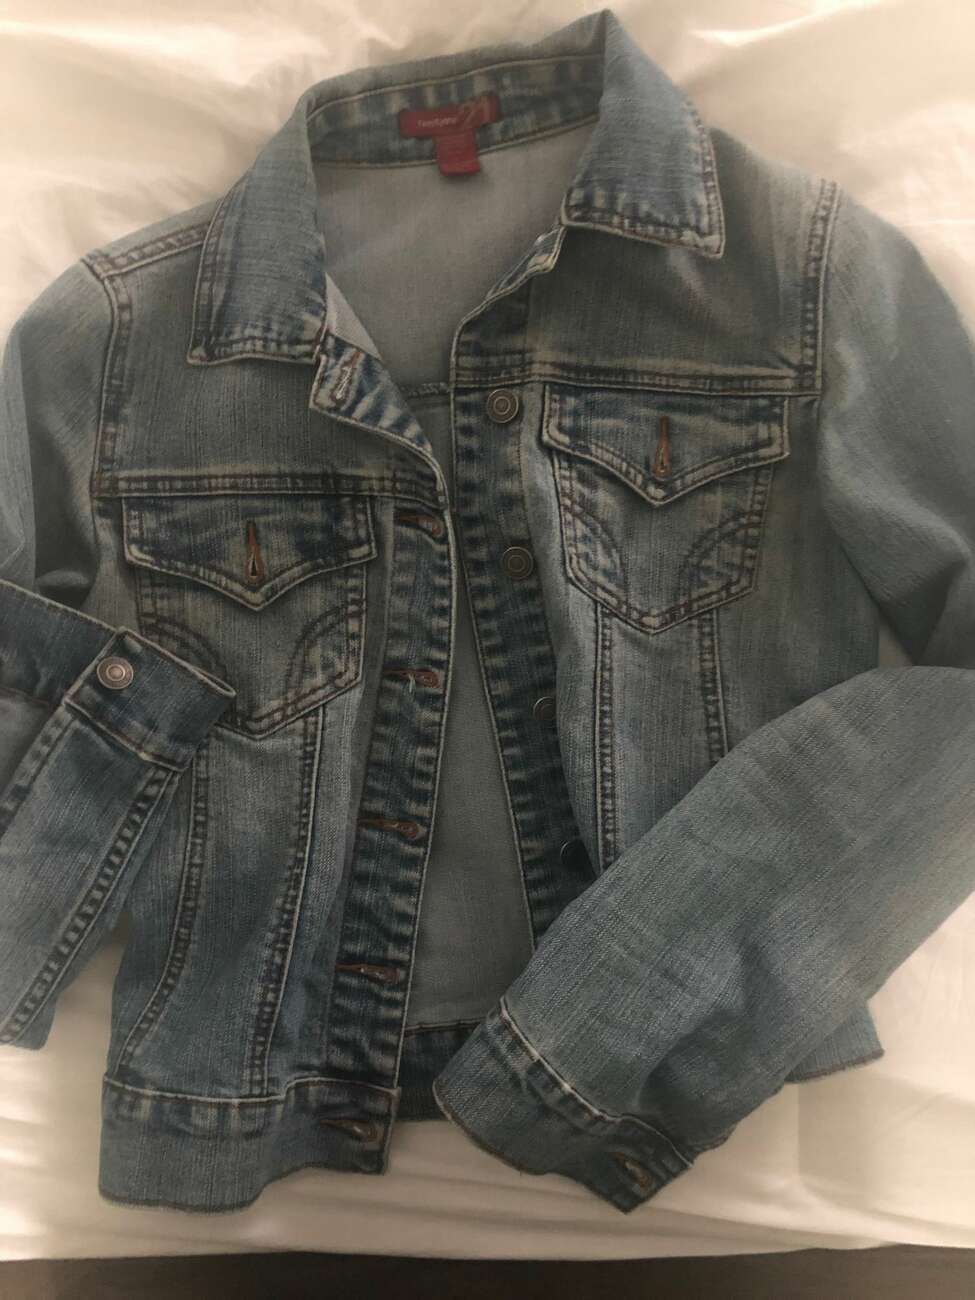 2. I still wear a denim jacket I bought 15 years ago – from Forever 21.